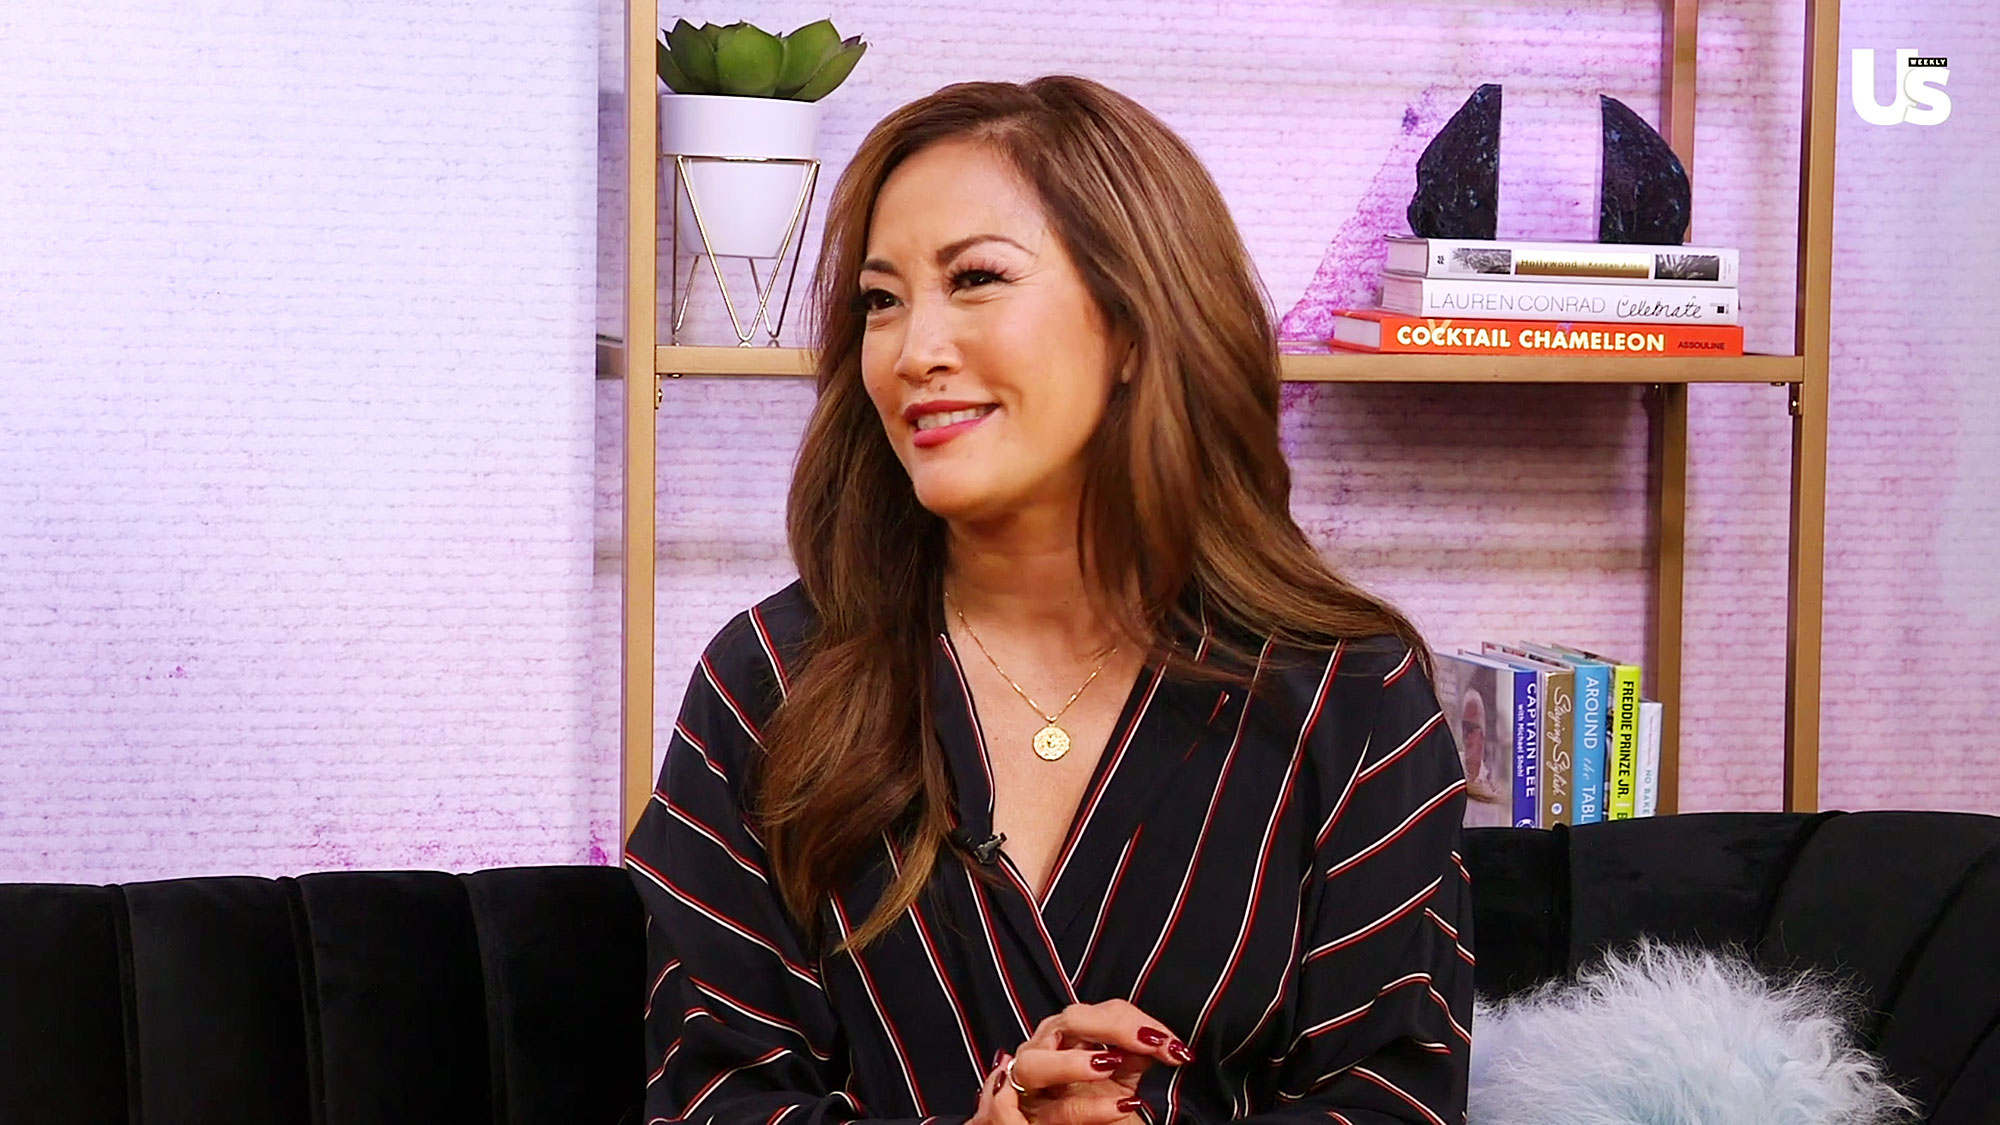 Carrie Ann Inaba Talks Replacing Julie Chen The Talk - Carrie Ann Inaba.